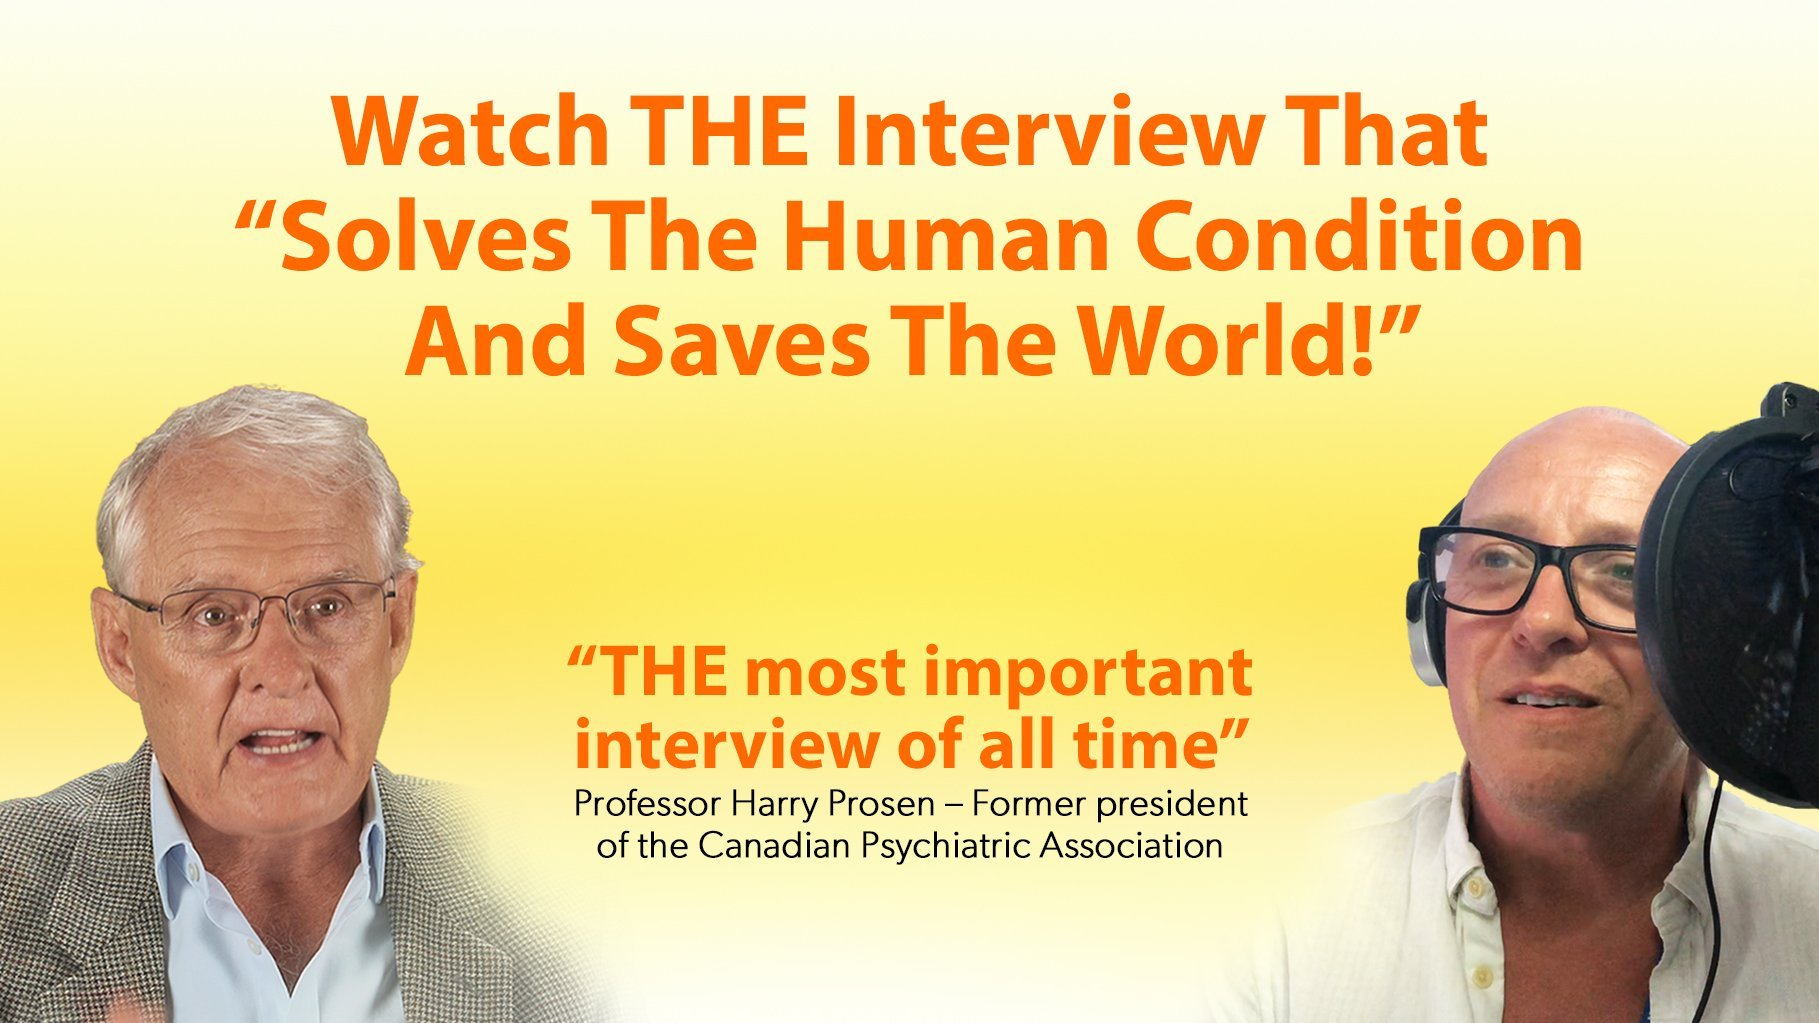 Portraits of radio host Craig Conway and Australian Biologist Jeremy Griffith with the title 'Watch THE Interview That Solves The Human Condition And Saves The World' and a quote from Professor Harry Prosen that reads 'THE most important interview of all time'